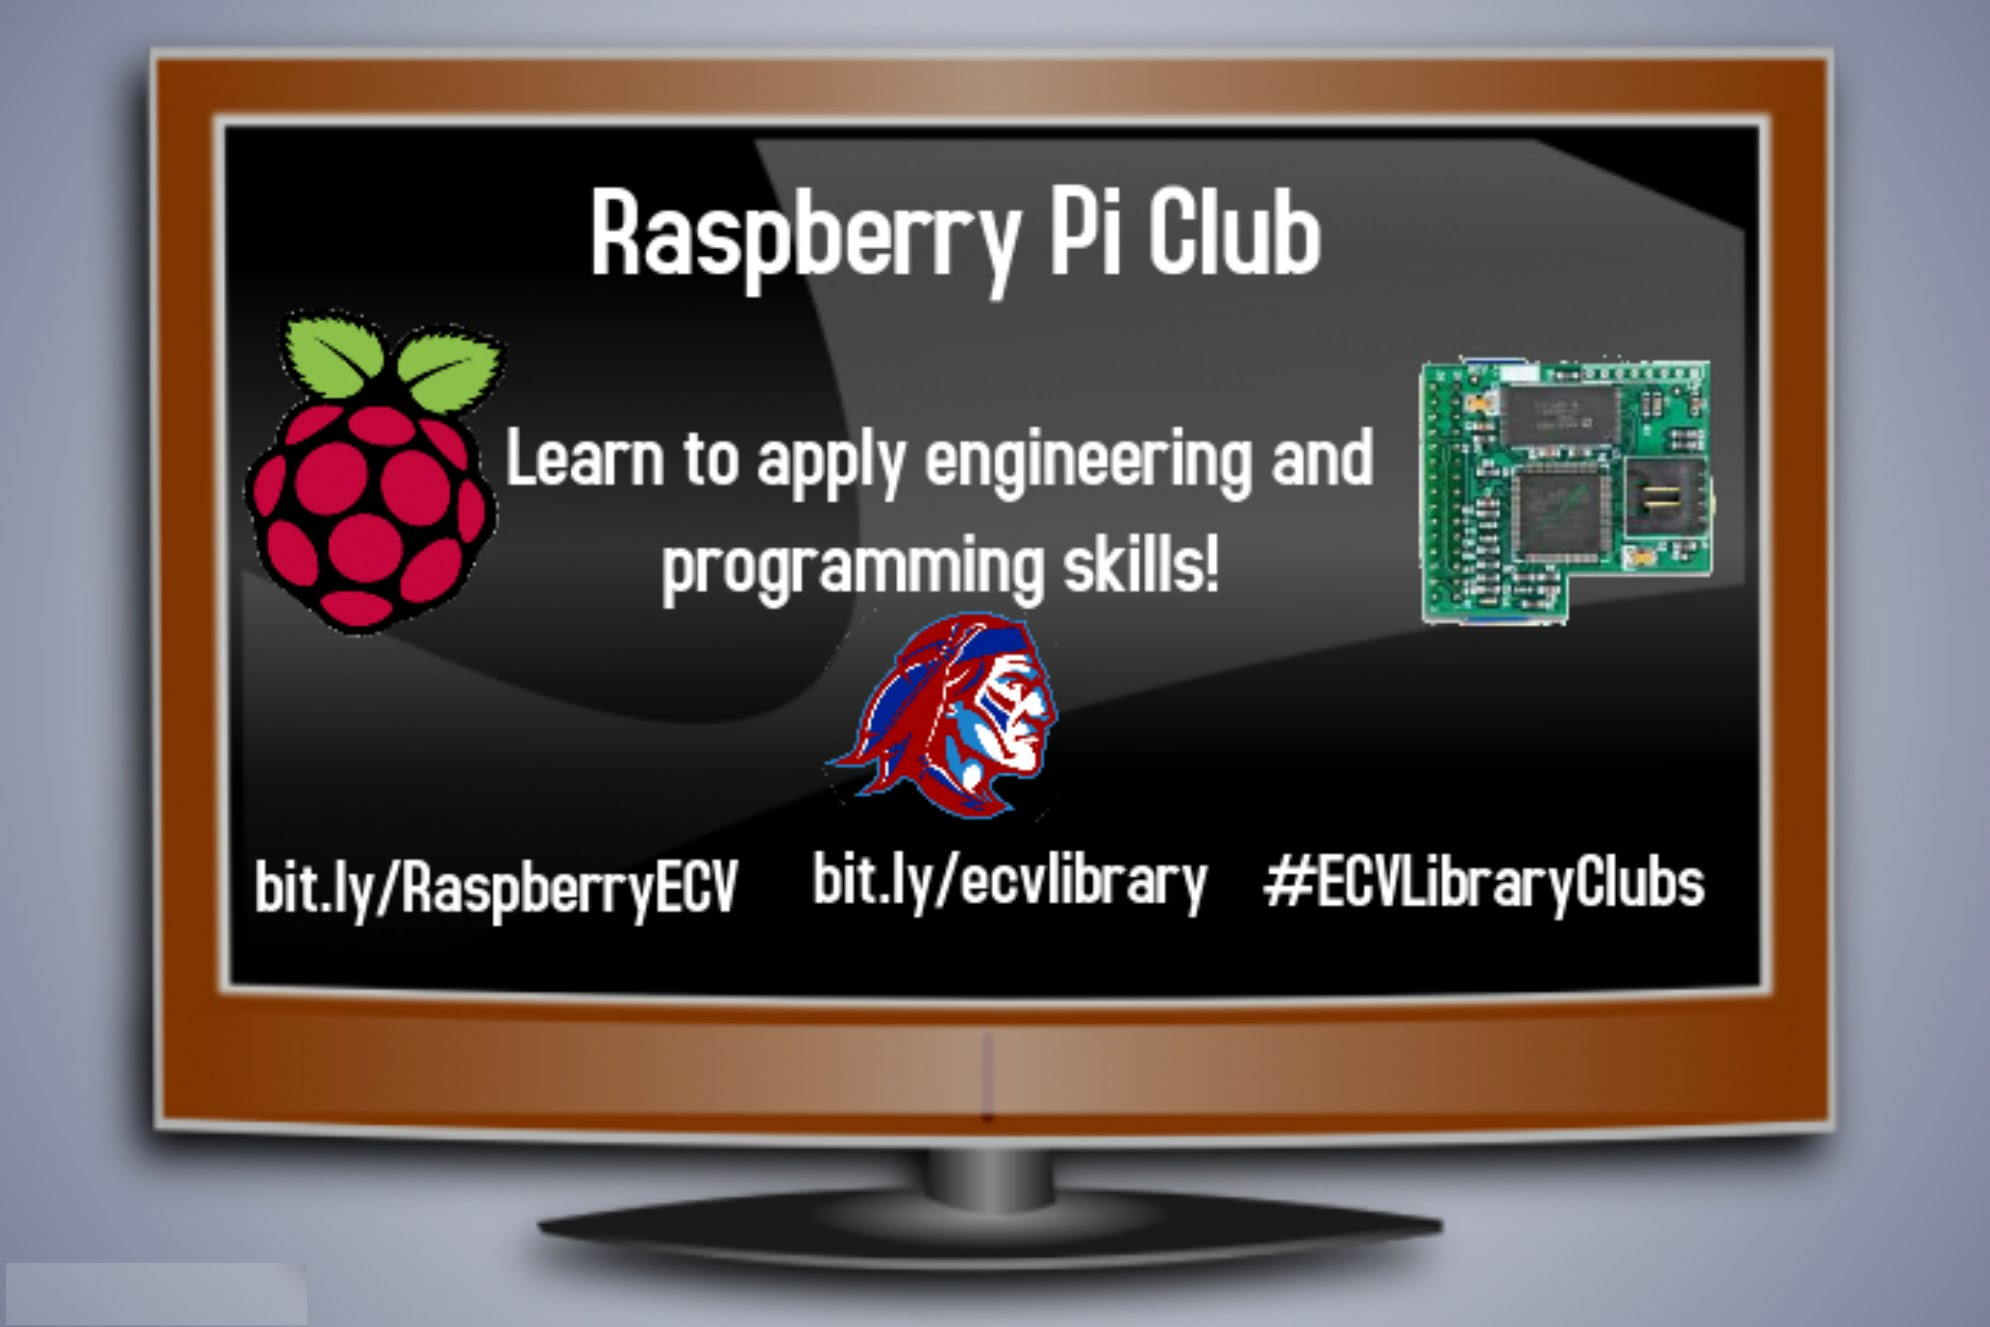 http://ecvhslibrary.weebly.com/raspberry-pi-club.html